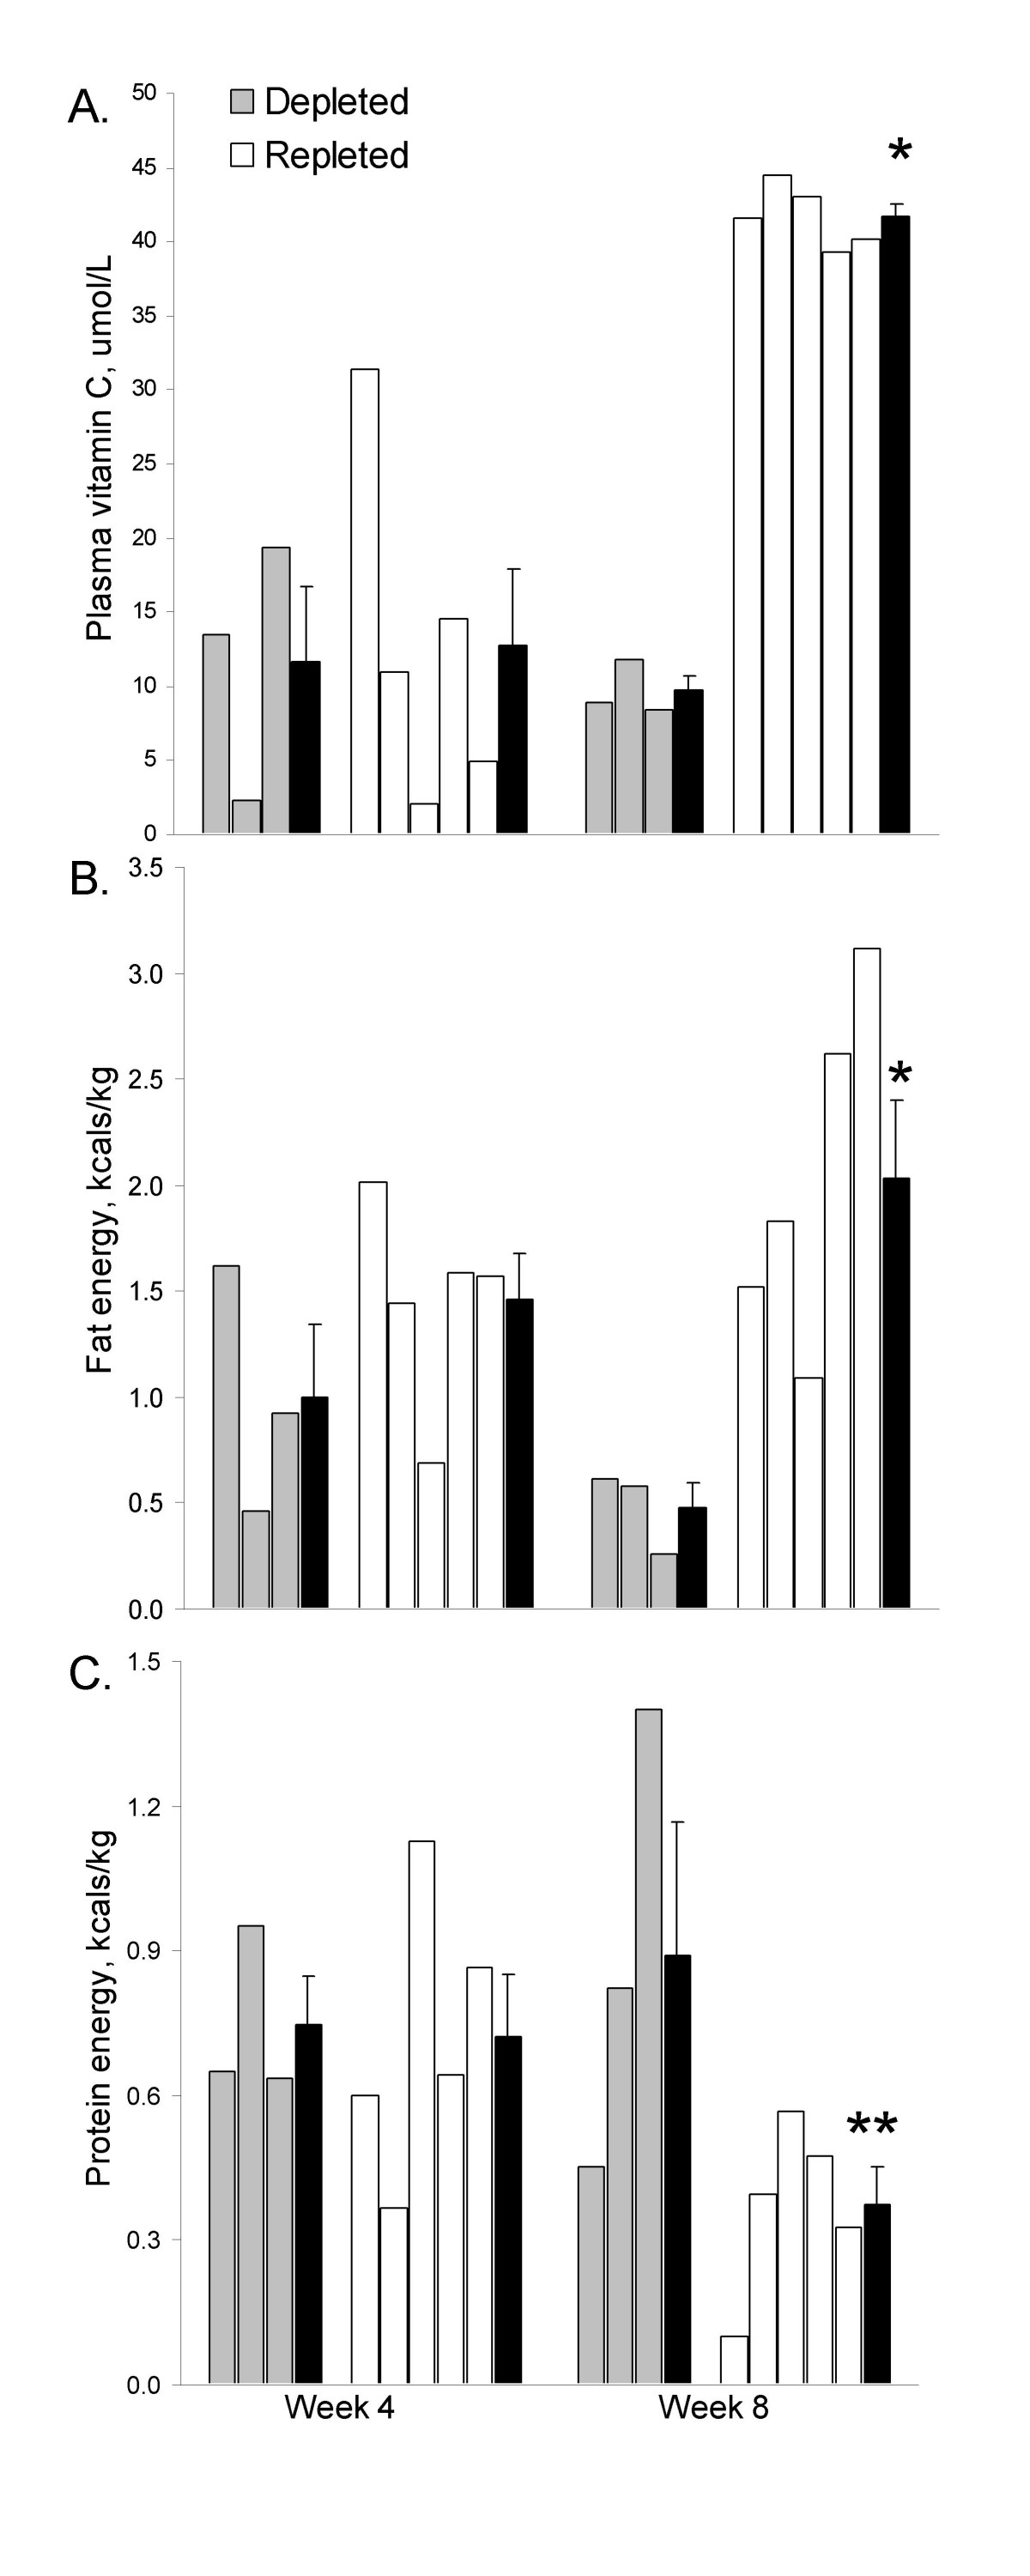 http://static-content.springer.com/image/art%3A10.1186%2F1743-7075-3-35/MediaObjects/12986_2006_Article_86_Fig1_HTML.jpg